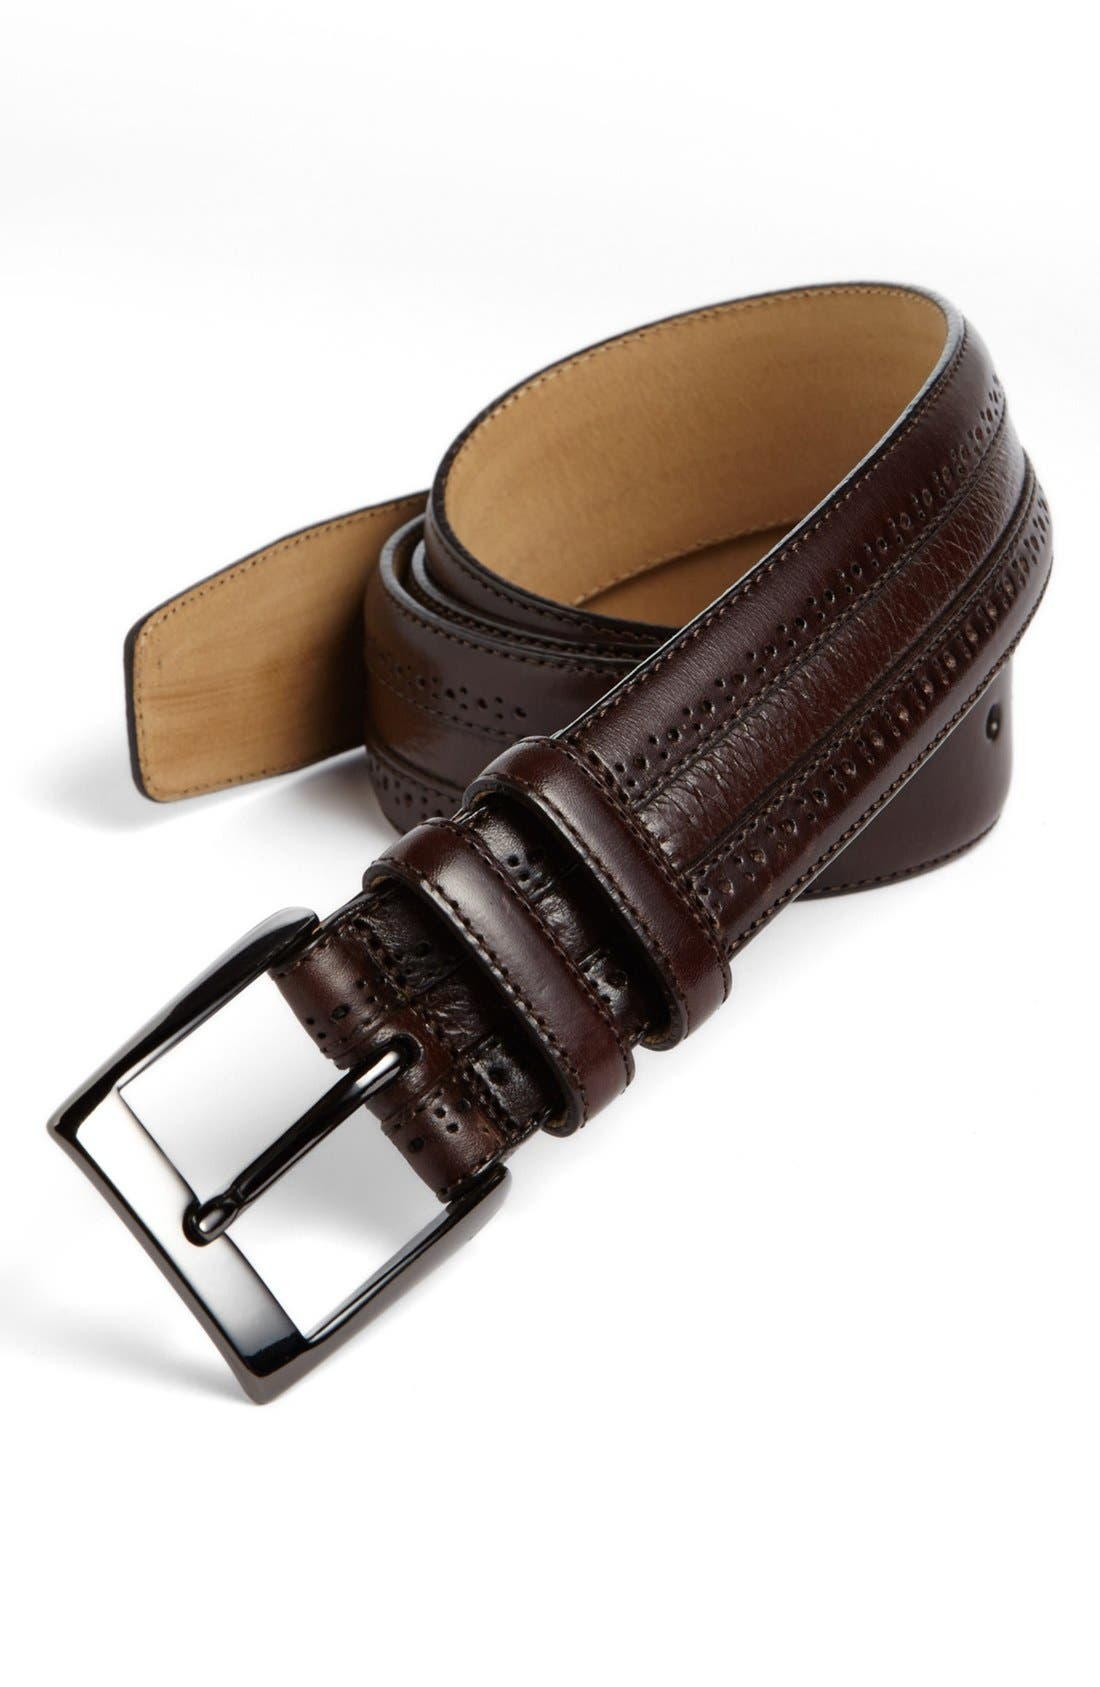 Alternate Image 1 Selected - Mezlan 'Vaqueta' Leather Belt